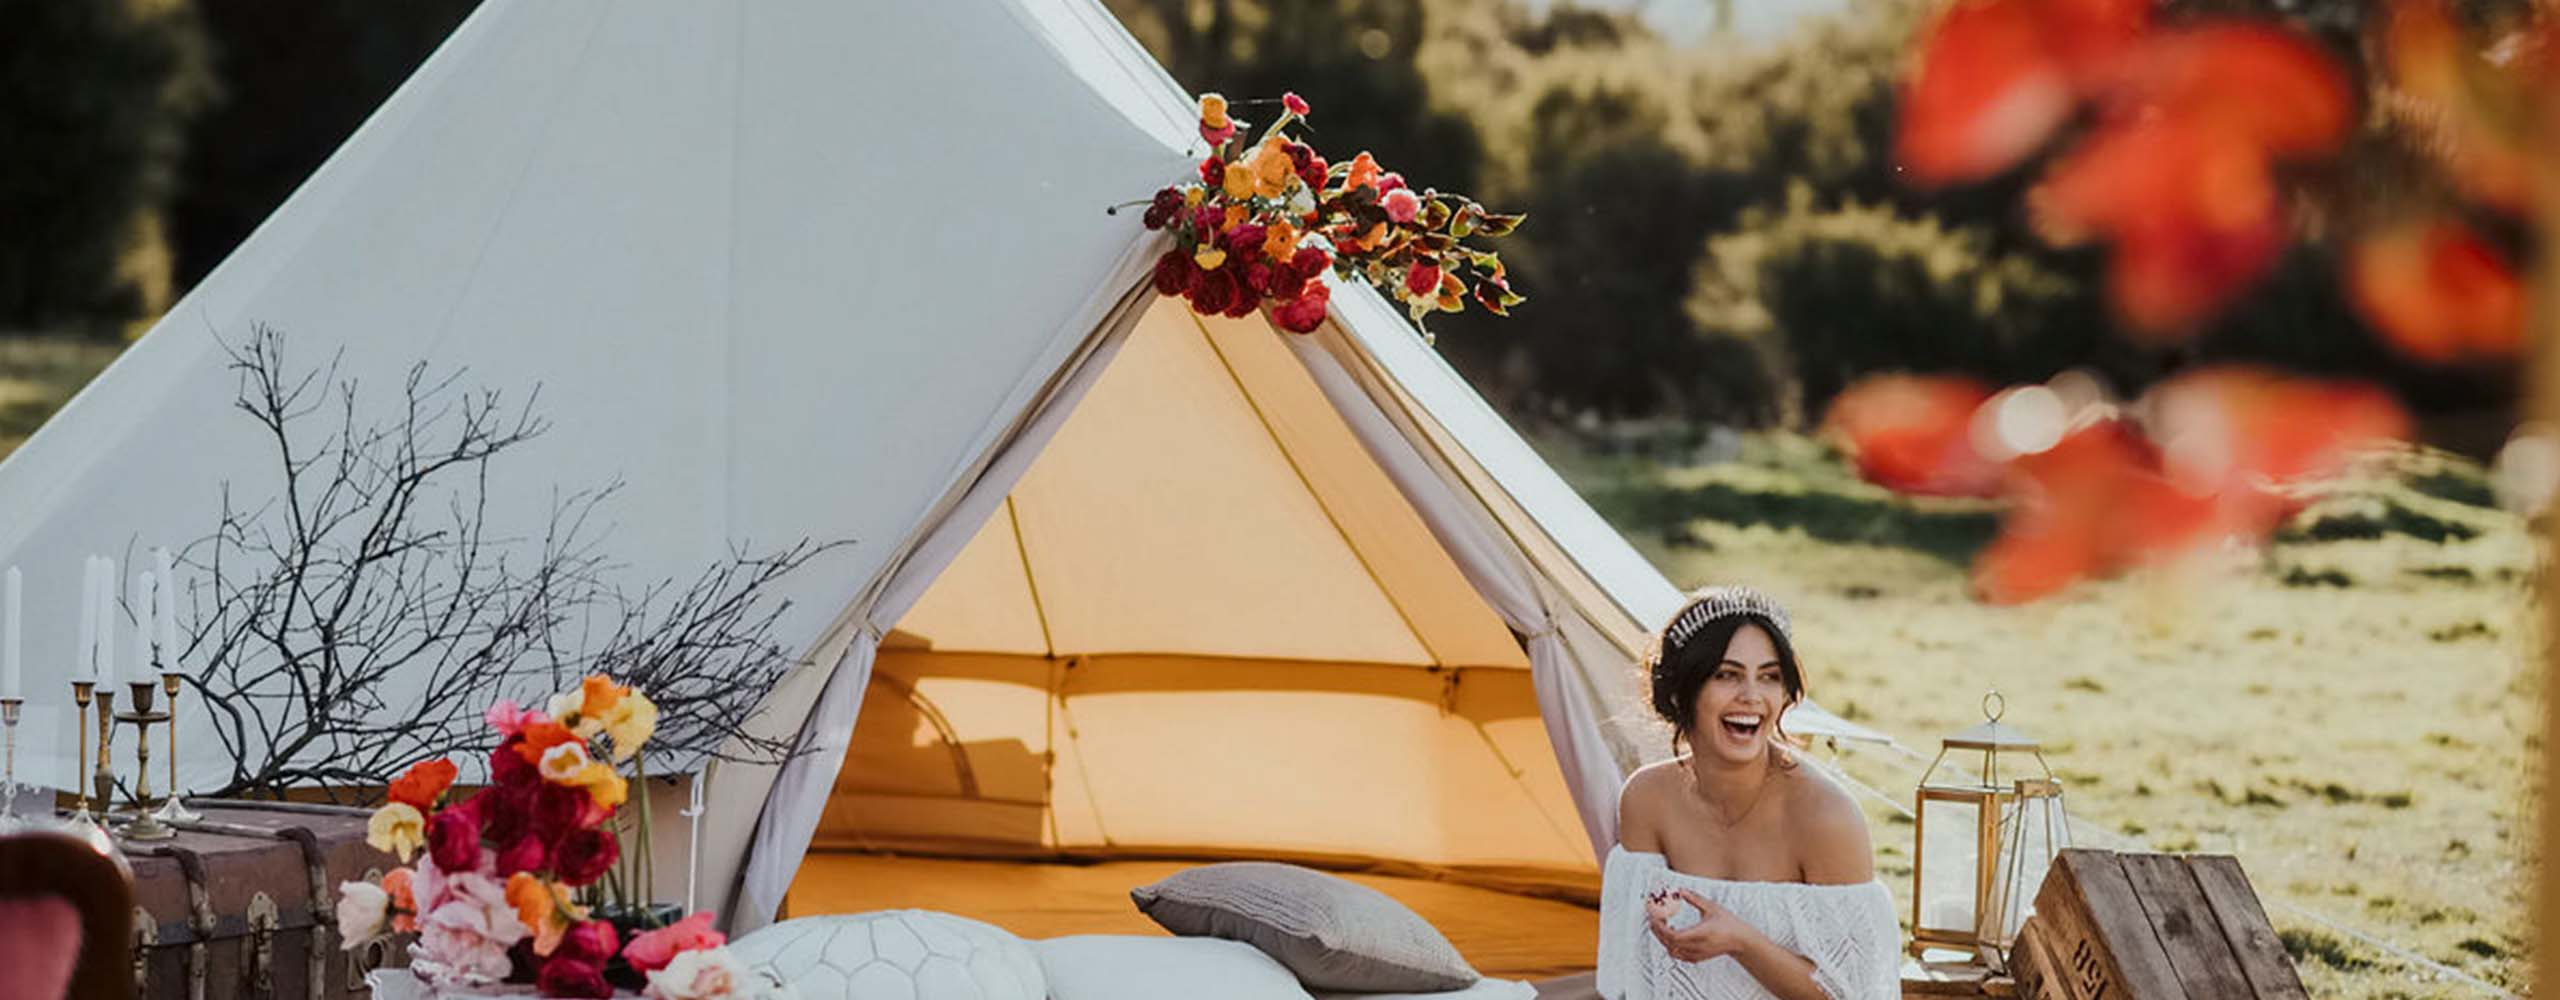 Glamping — styled glamping tent with florals and wedding gowns